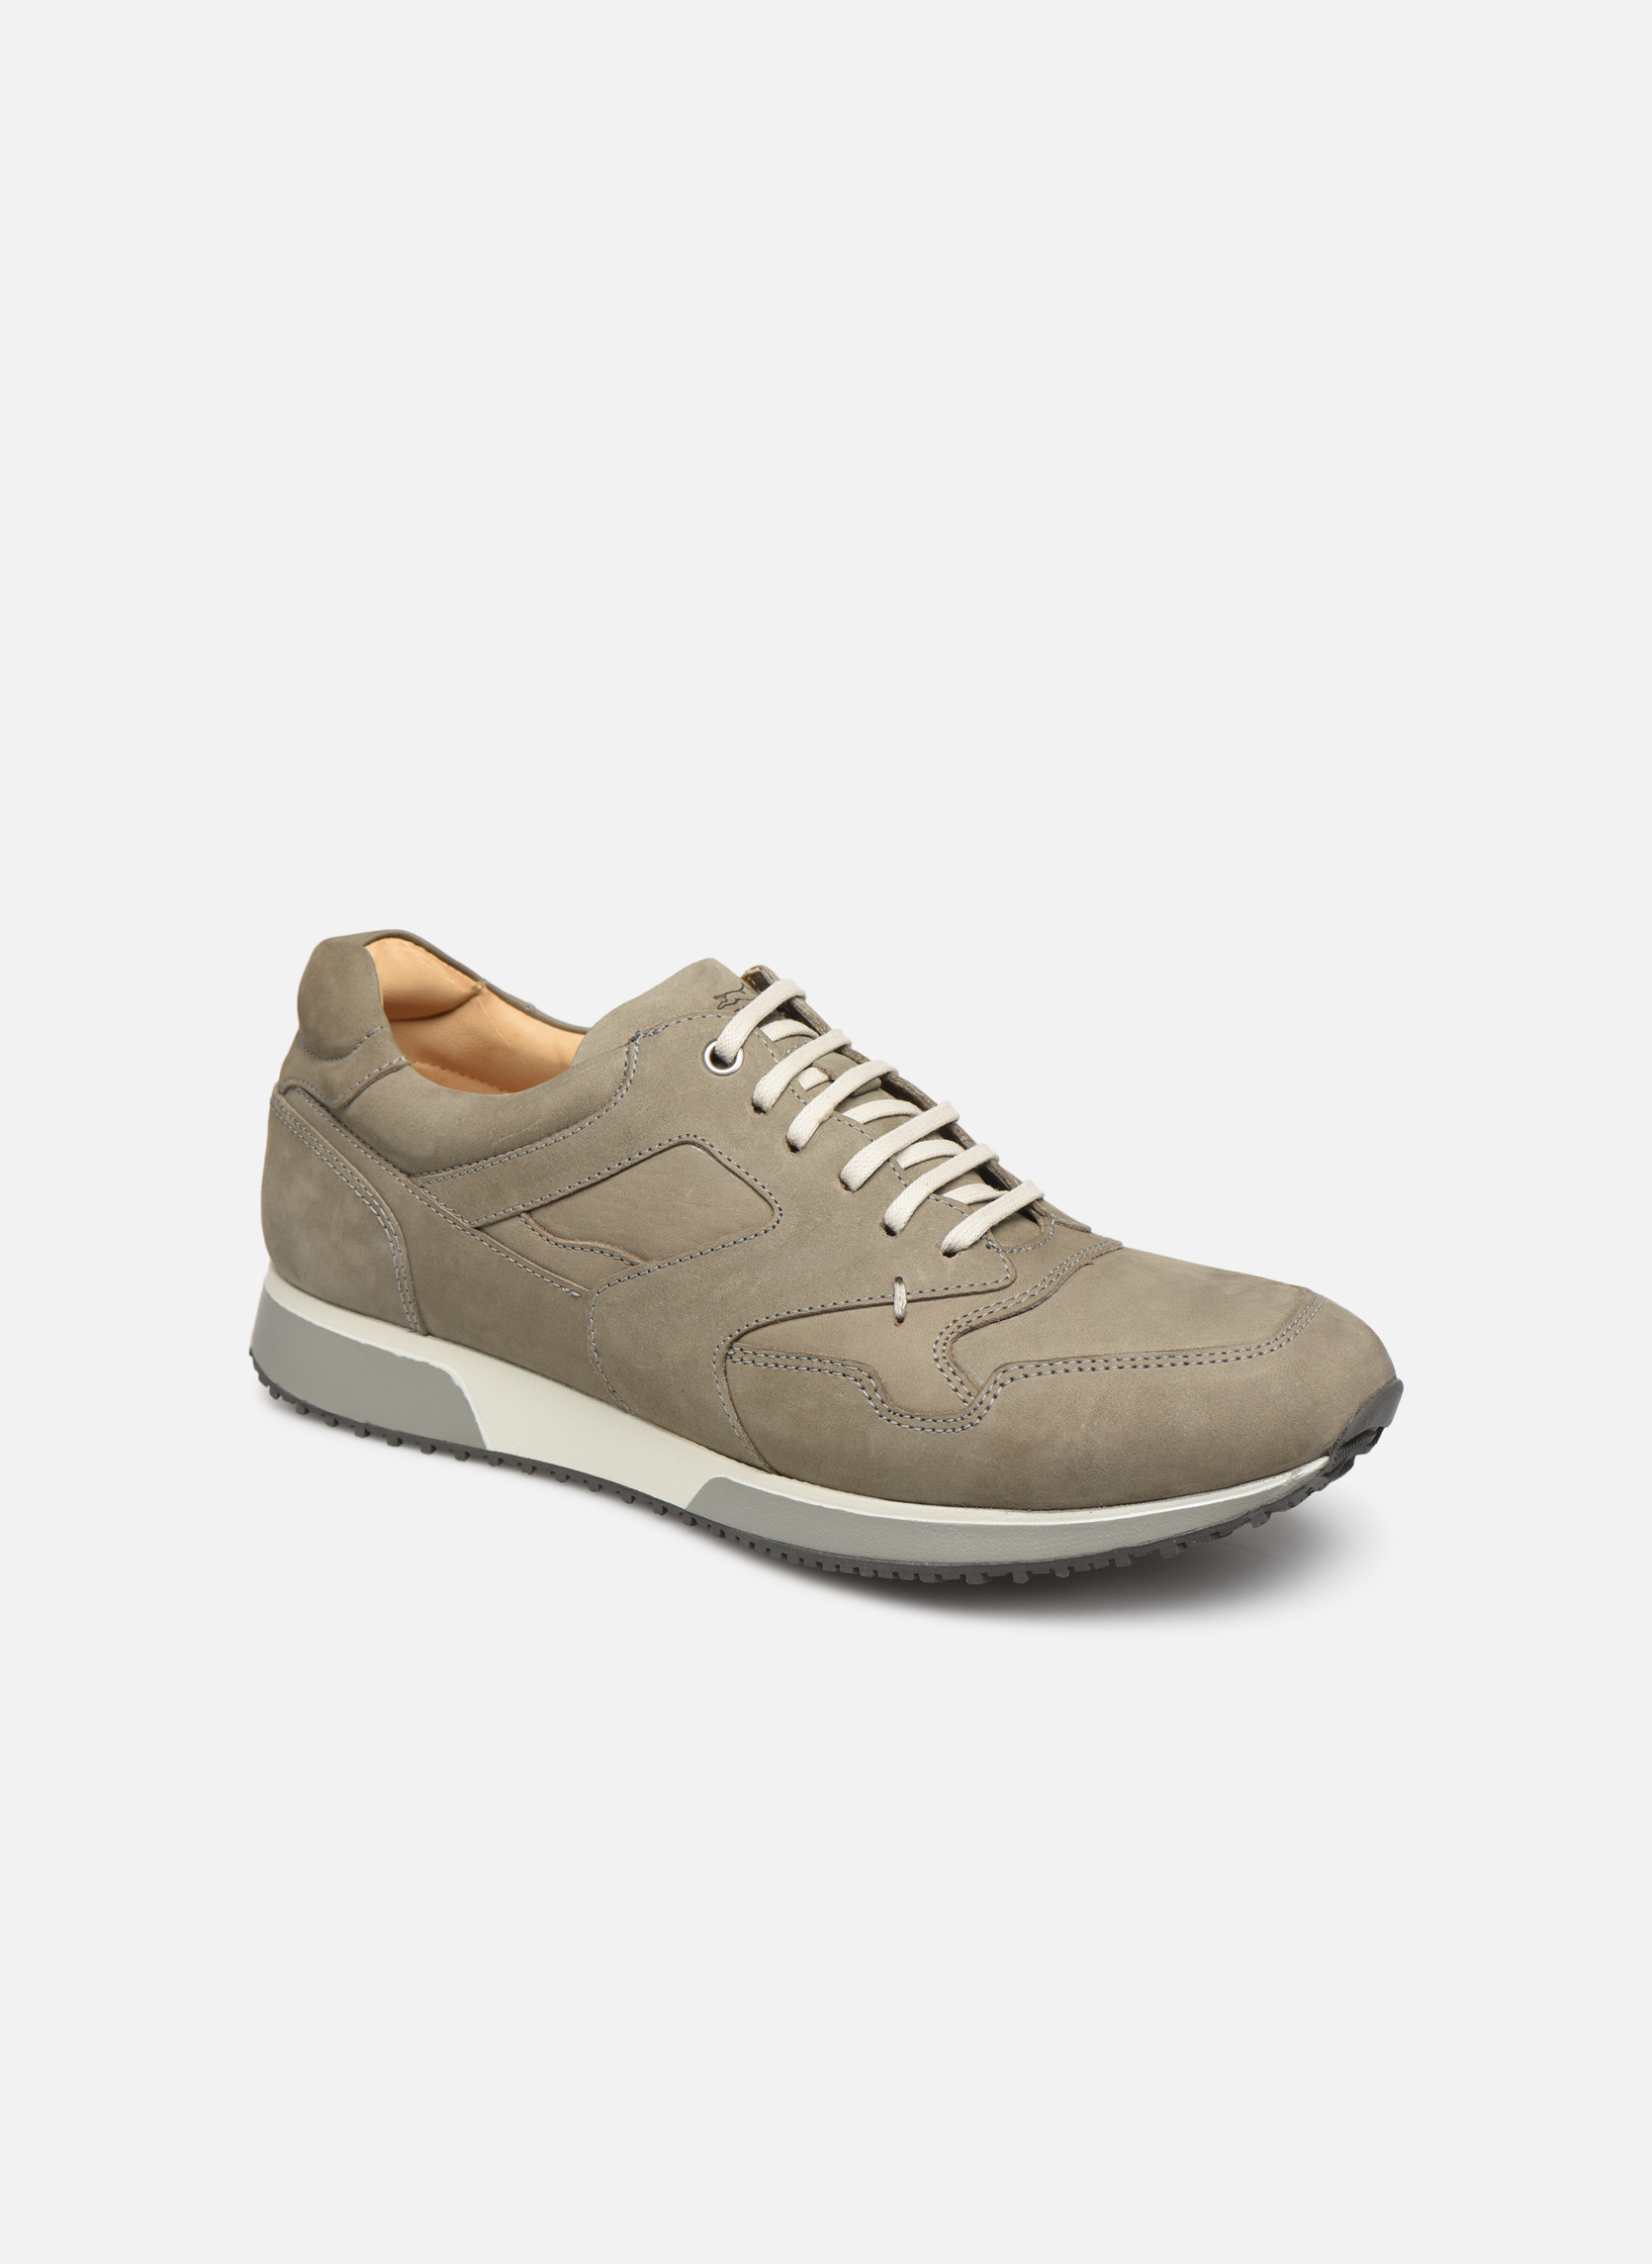 Sneakers Vai C by Anatomic & Co